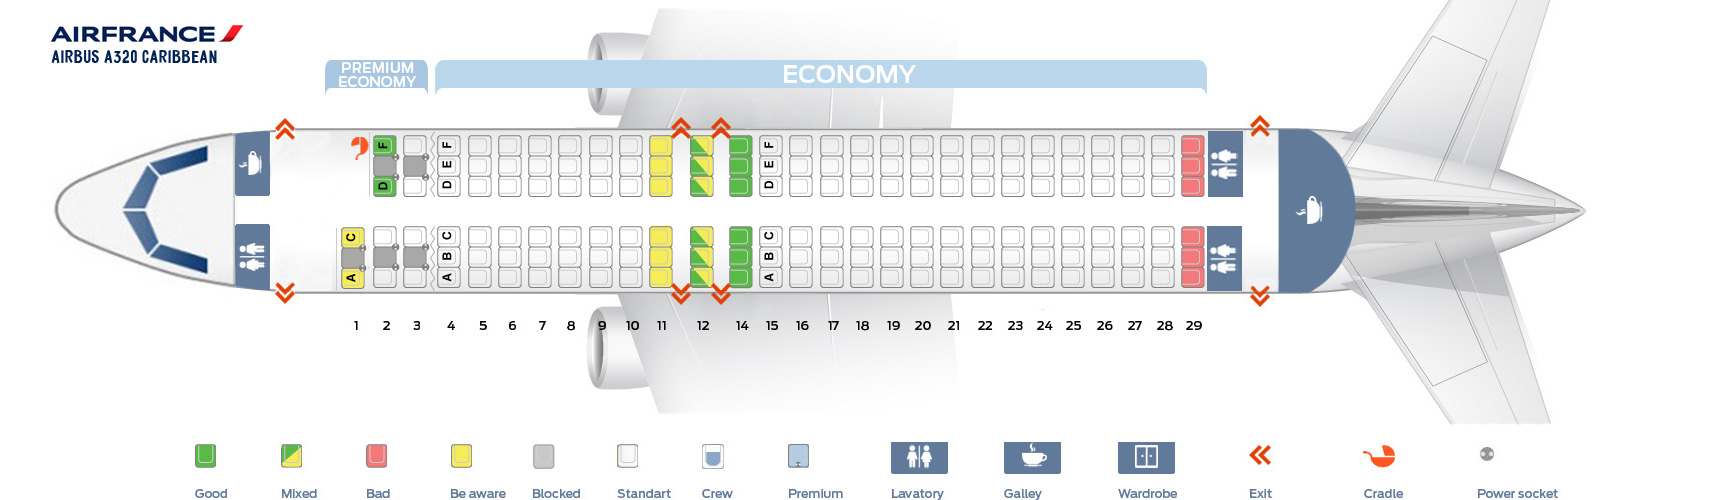 Seat Map Airbus A320 Caribbean Air France